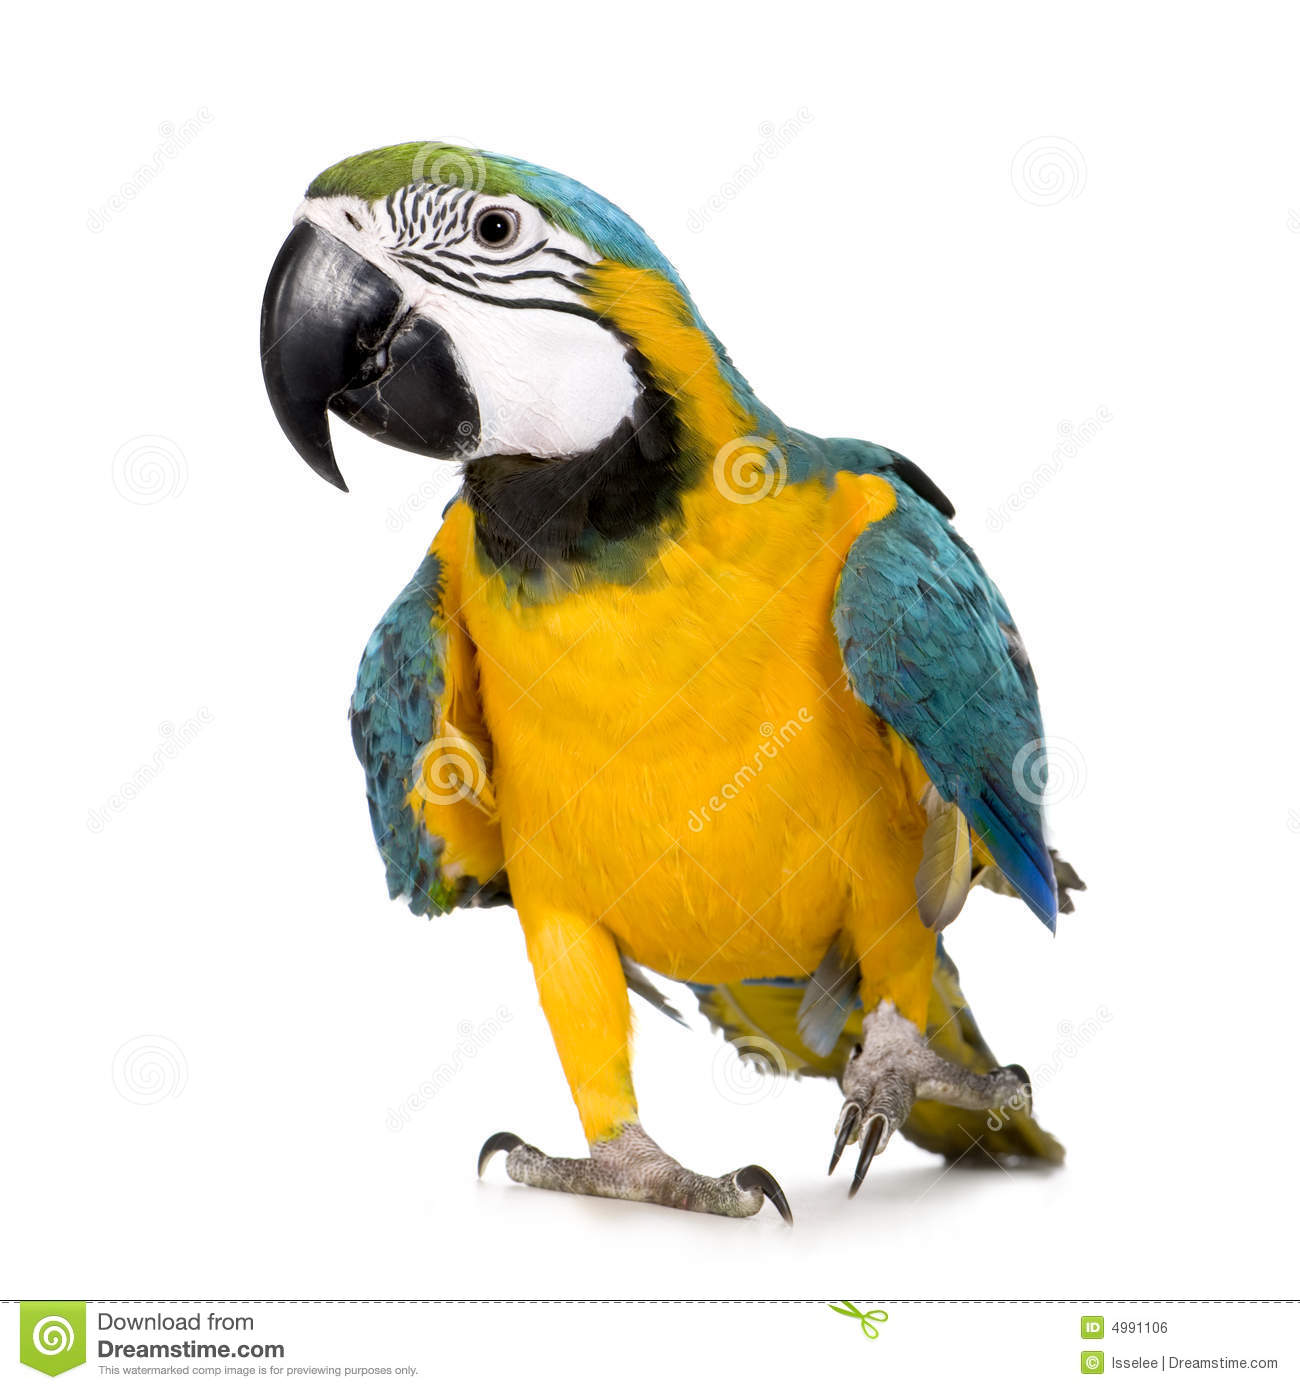 Cute Parakeet Wallpaper Young Blue And Yellow Macaw Stock Photo Image Of